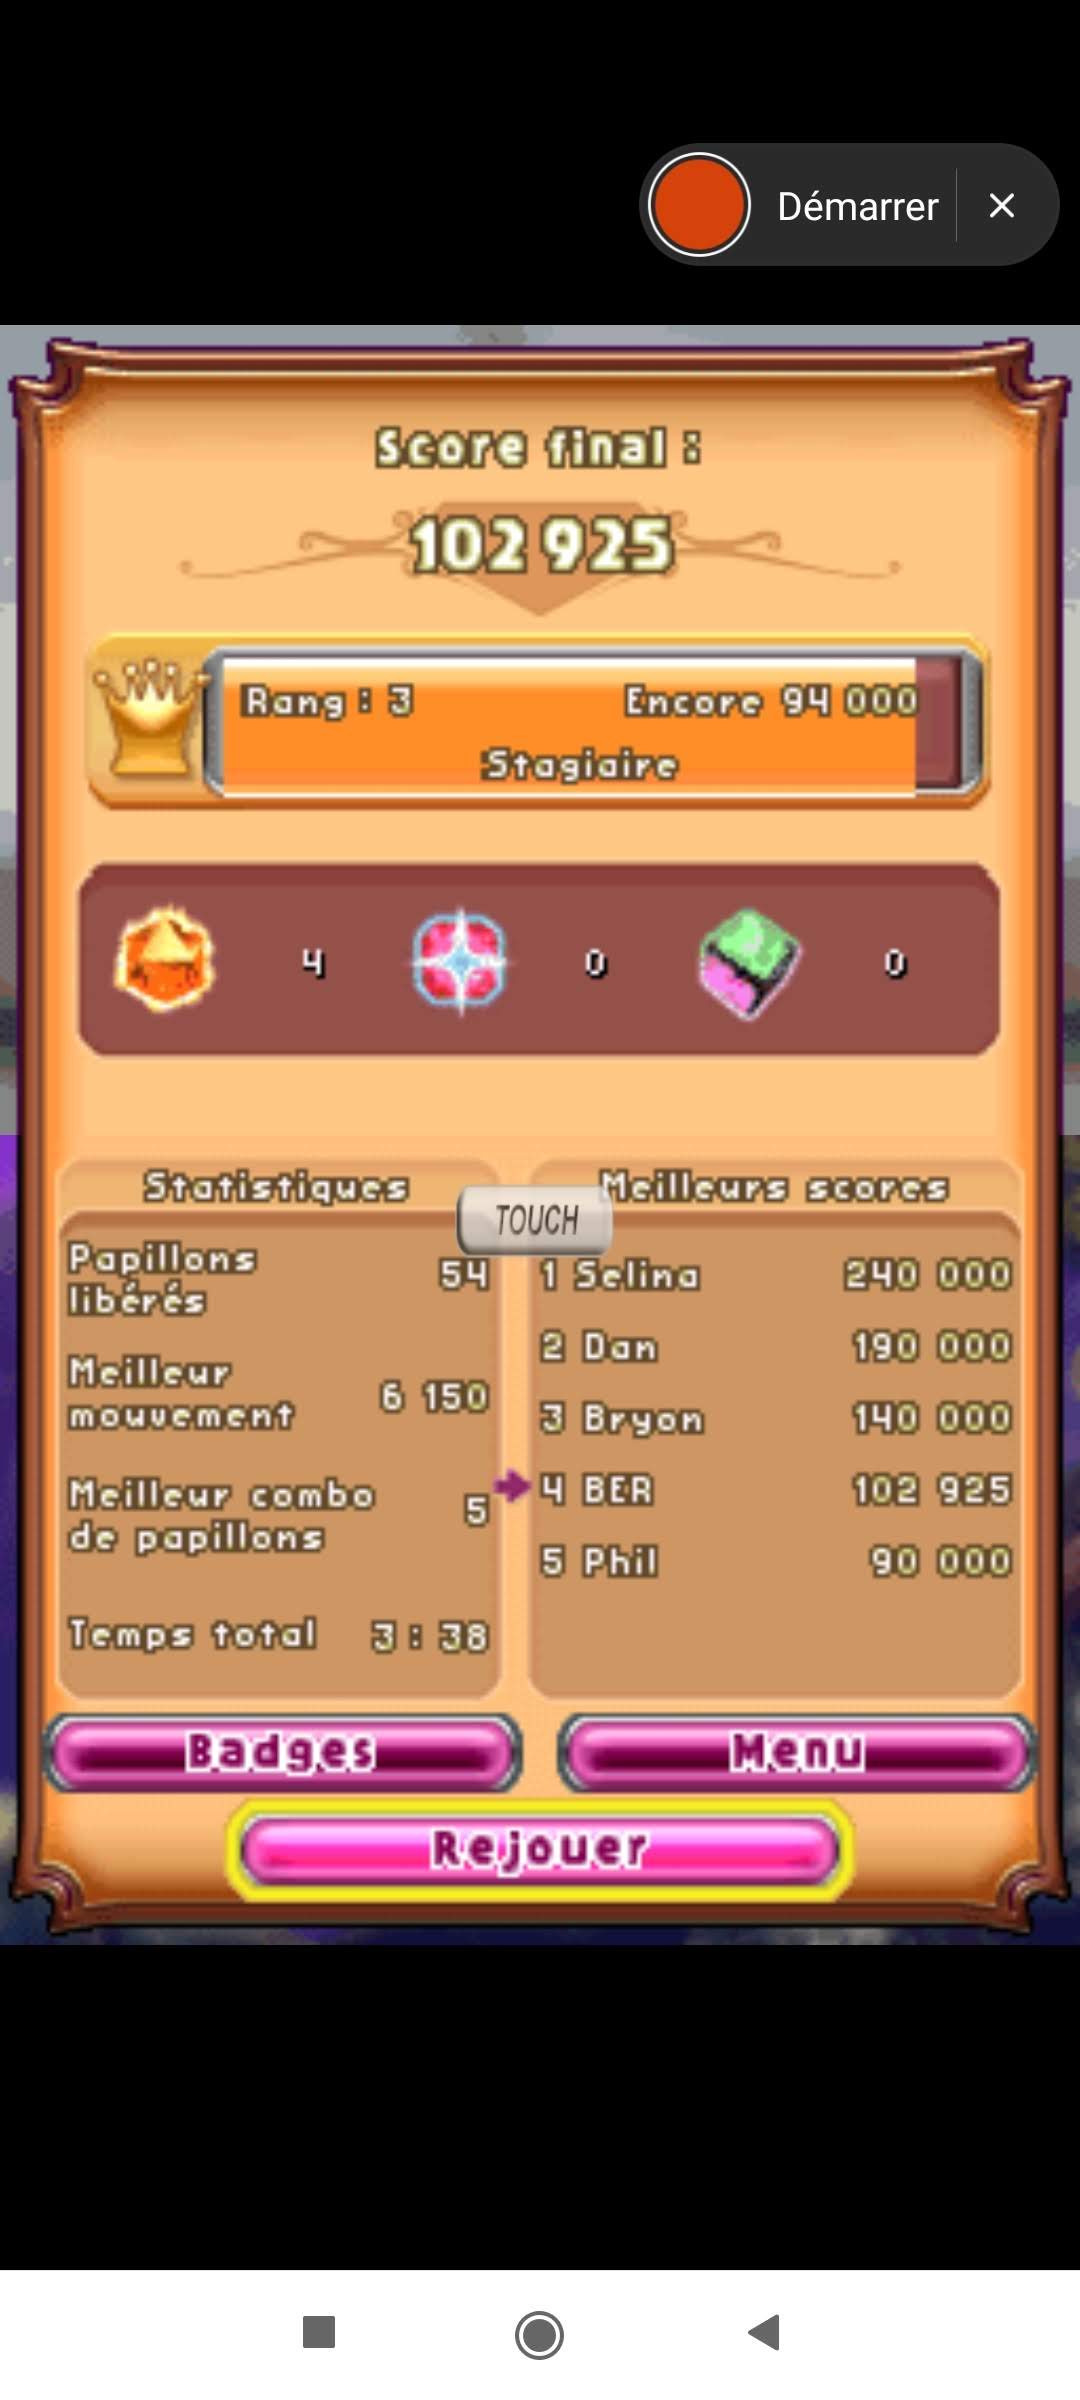 Larquey: Bejeweled 3: Butterflies [Number of Hypercubes] (Nintendo DS Emulated) 0 points on 2020-09-27 04:29:33